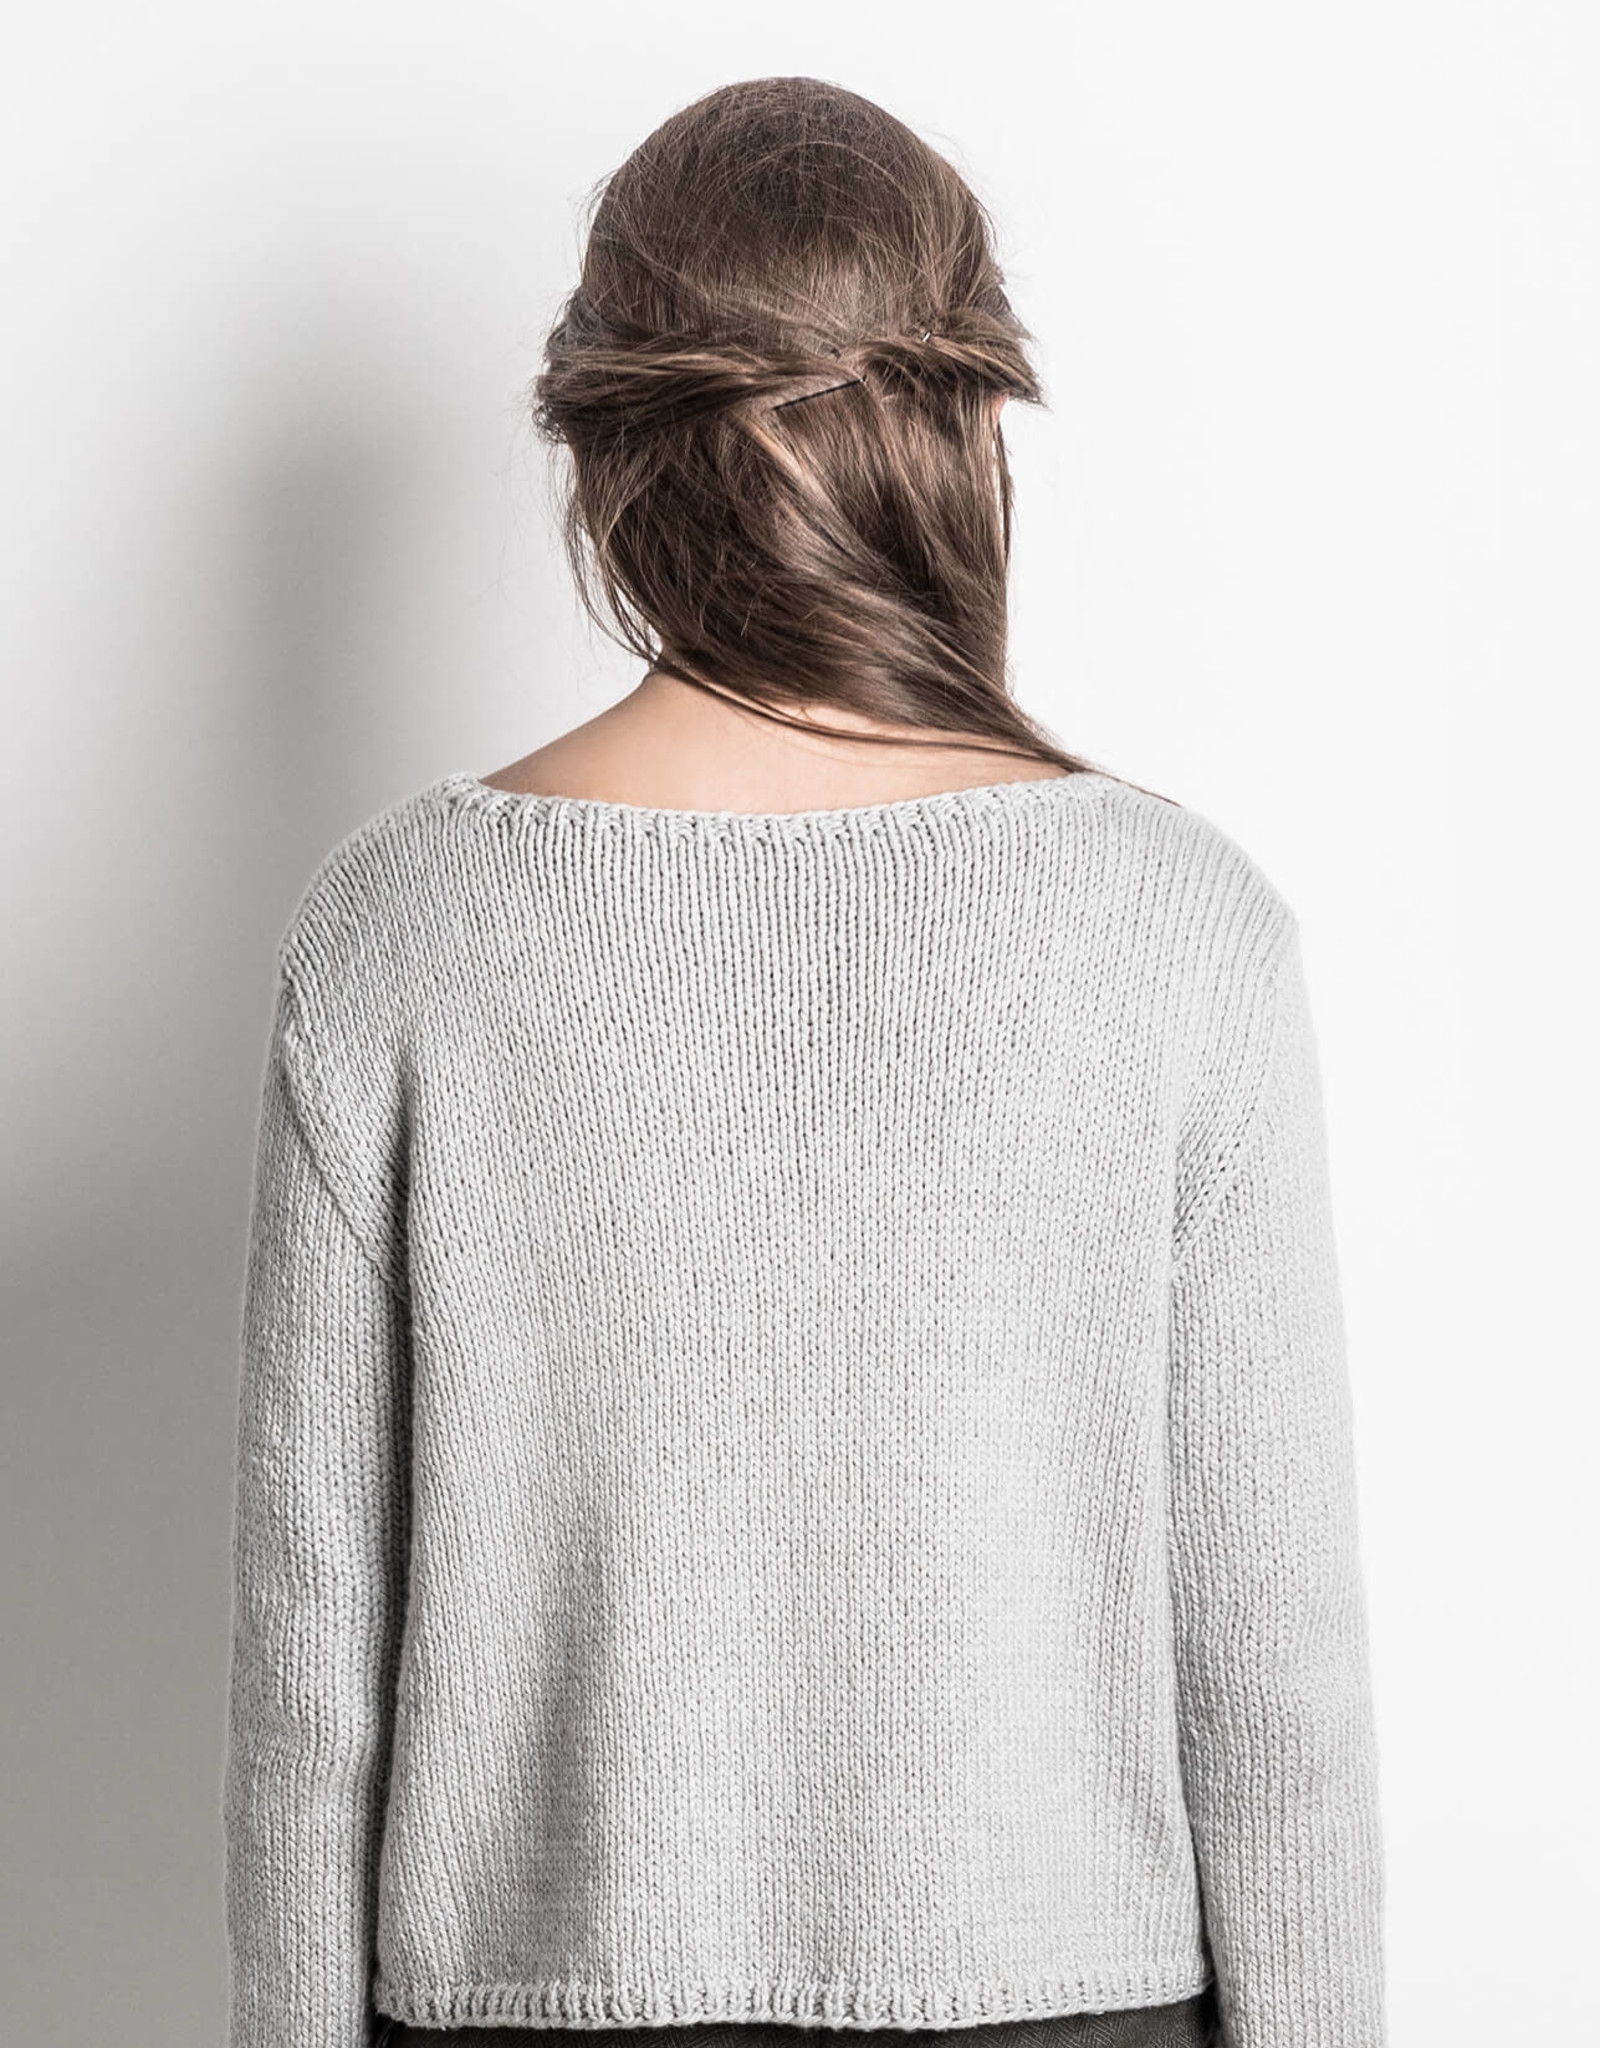 Blue Sky Fibers Spring Hill Sweater in Organic Cotton Worsted